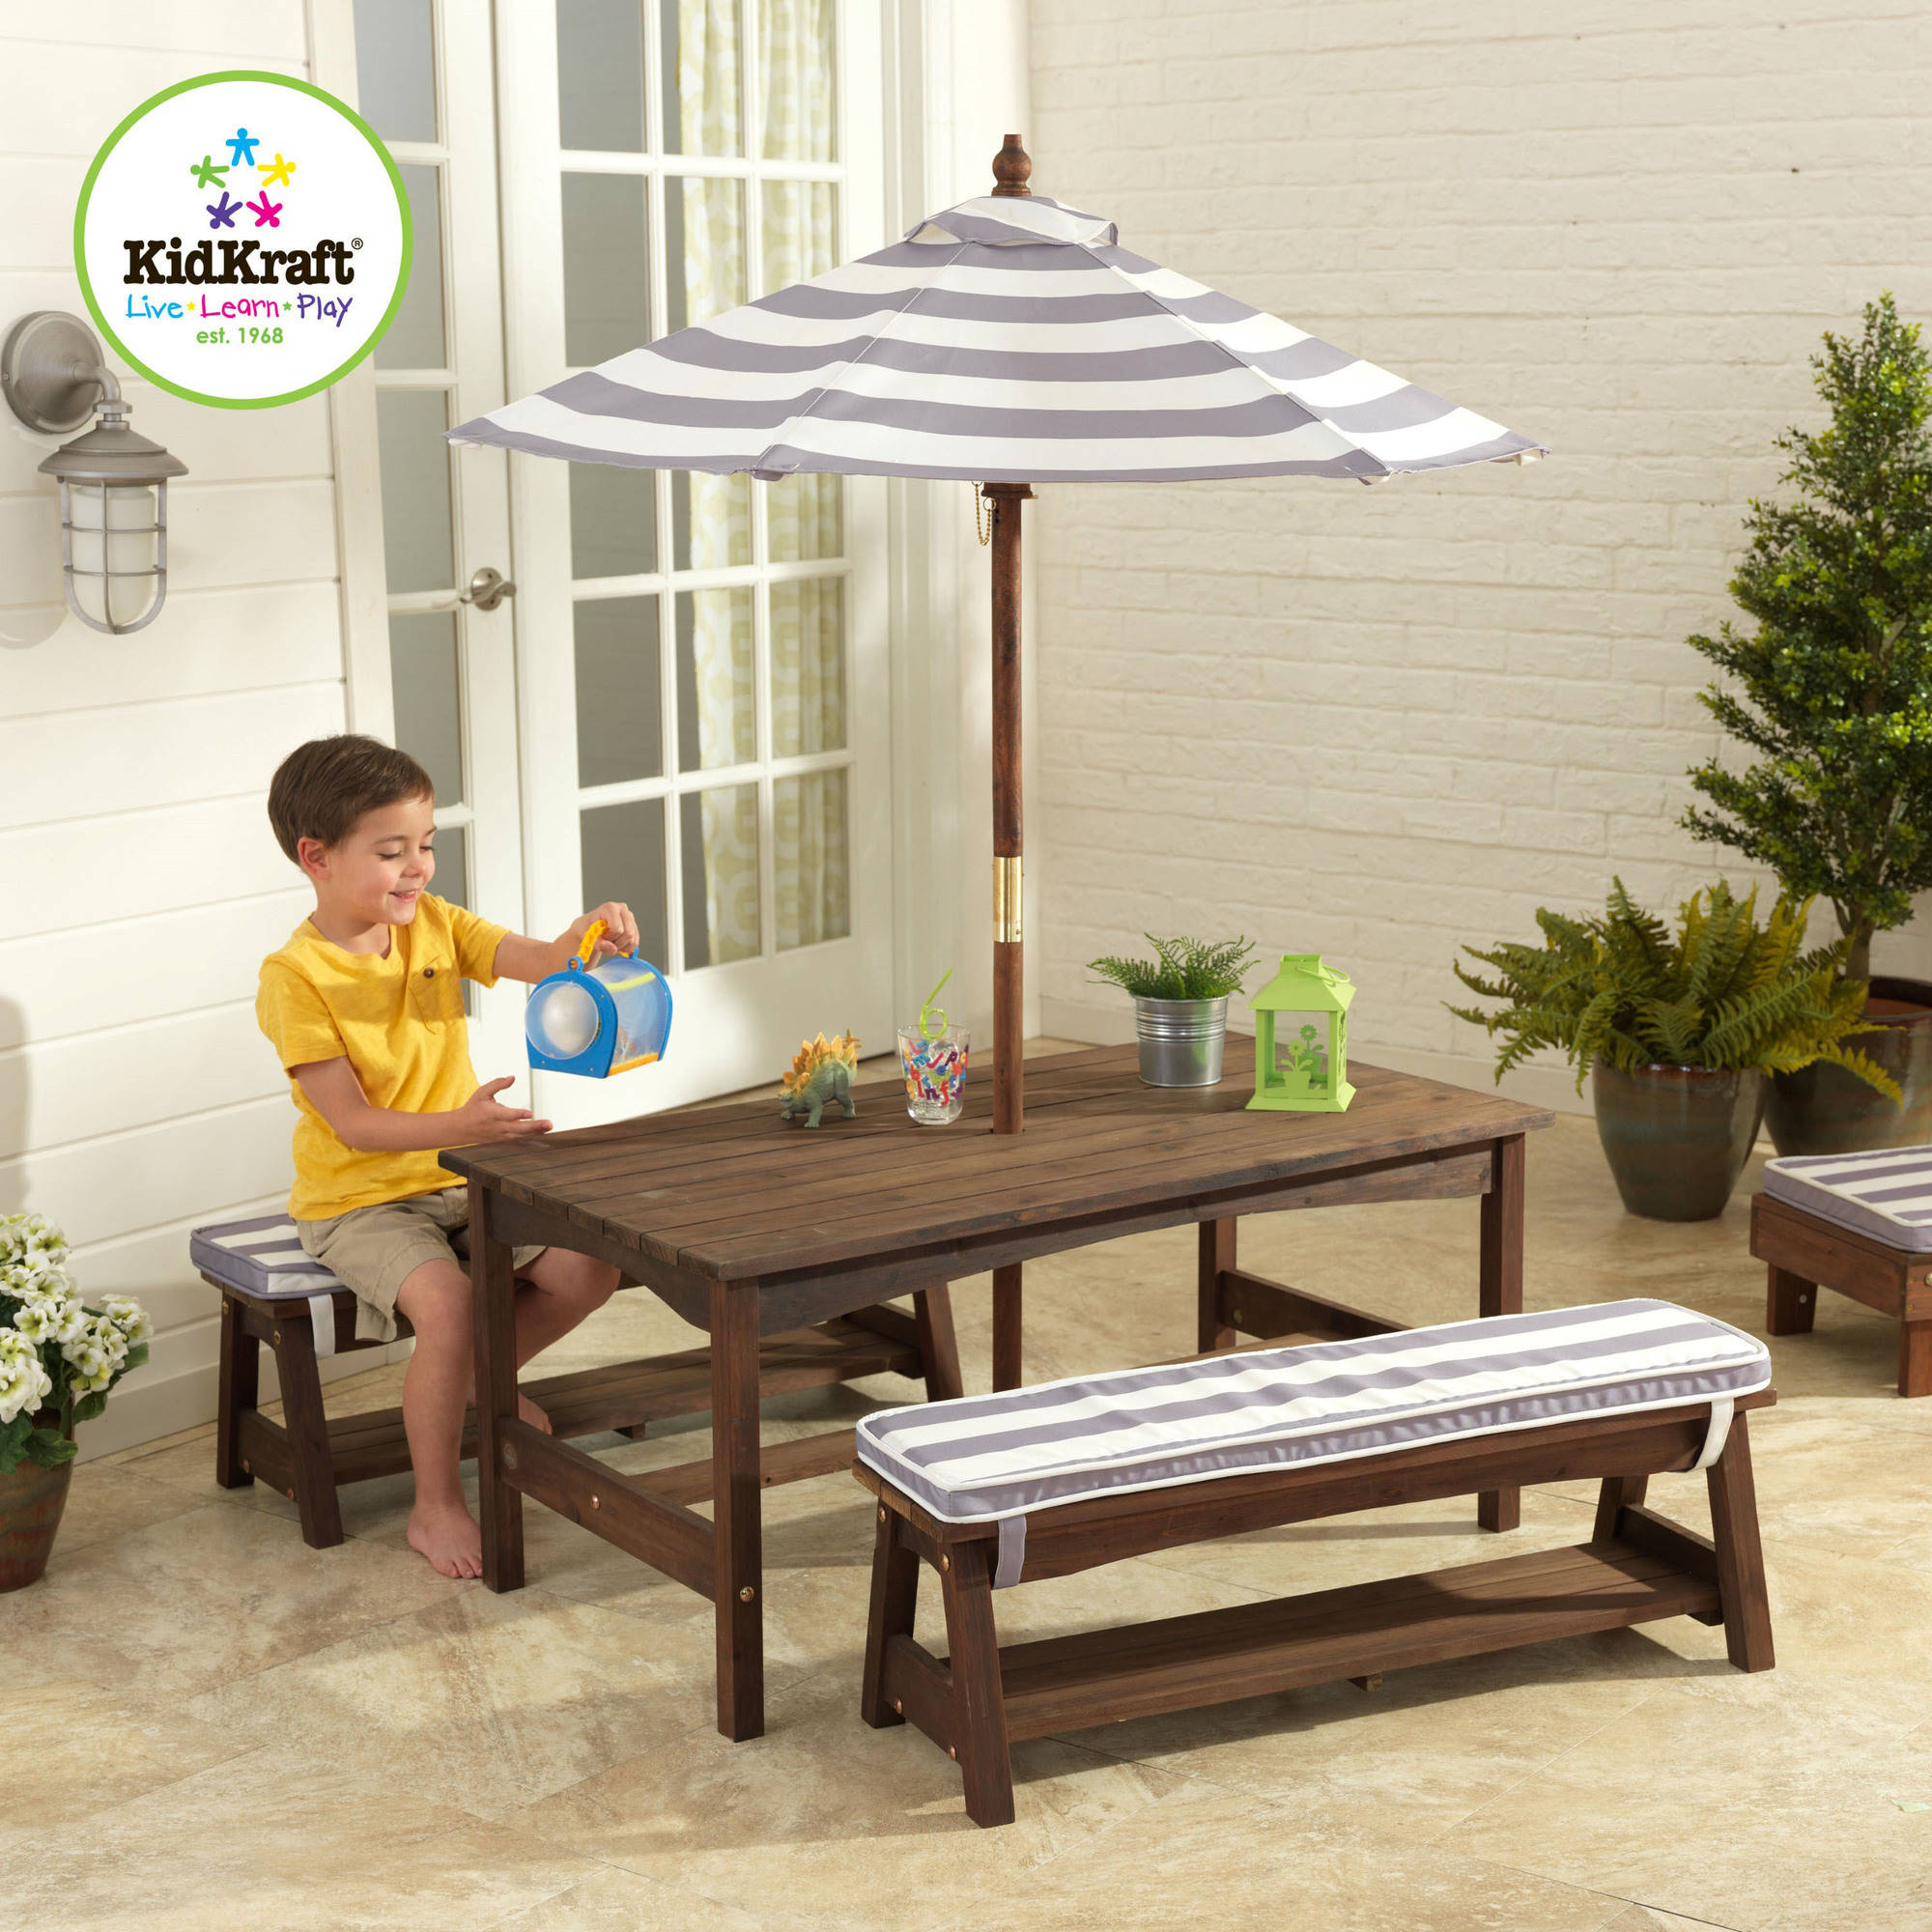 Kidkraft Outdoor Table And Bench Set Gra   Walmart.com